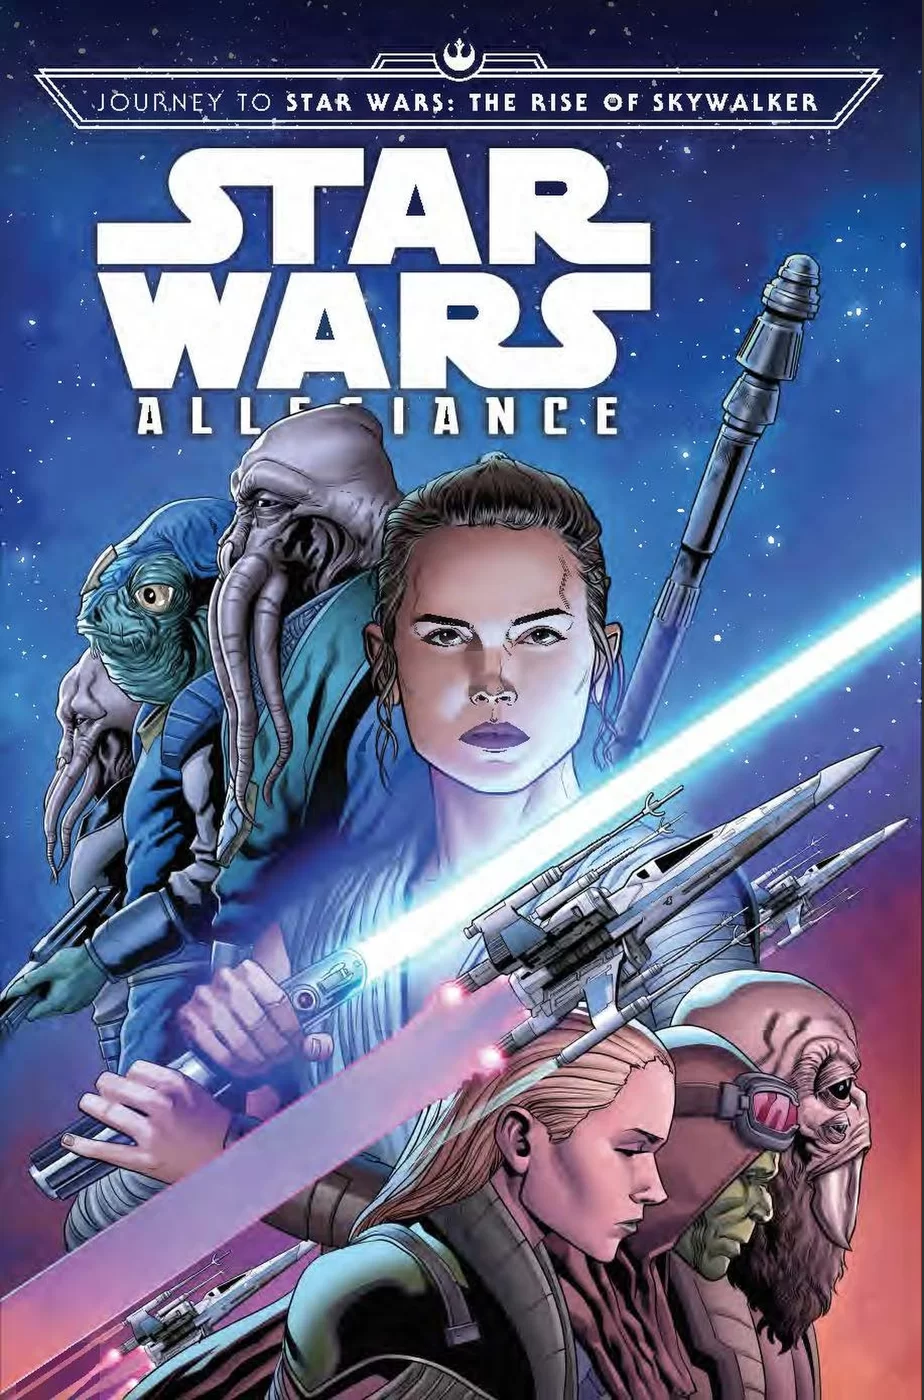 The Story Of Star Wars Rise Of Skywalker Begins With Allegiance Space